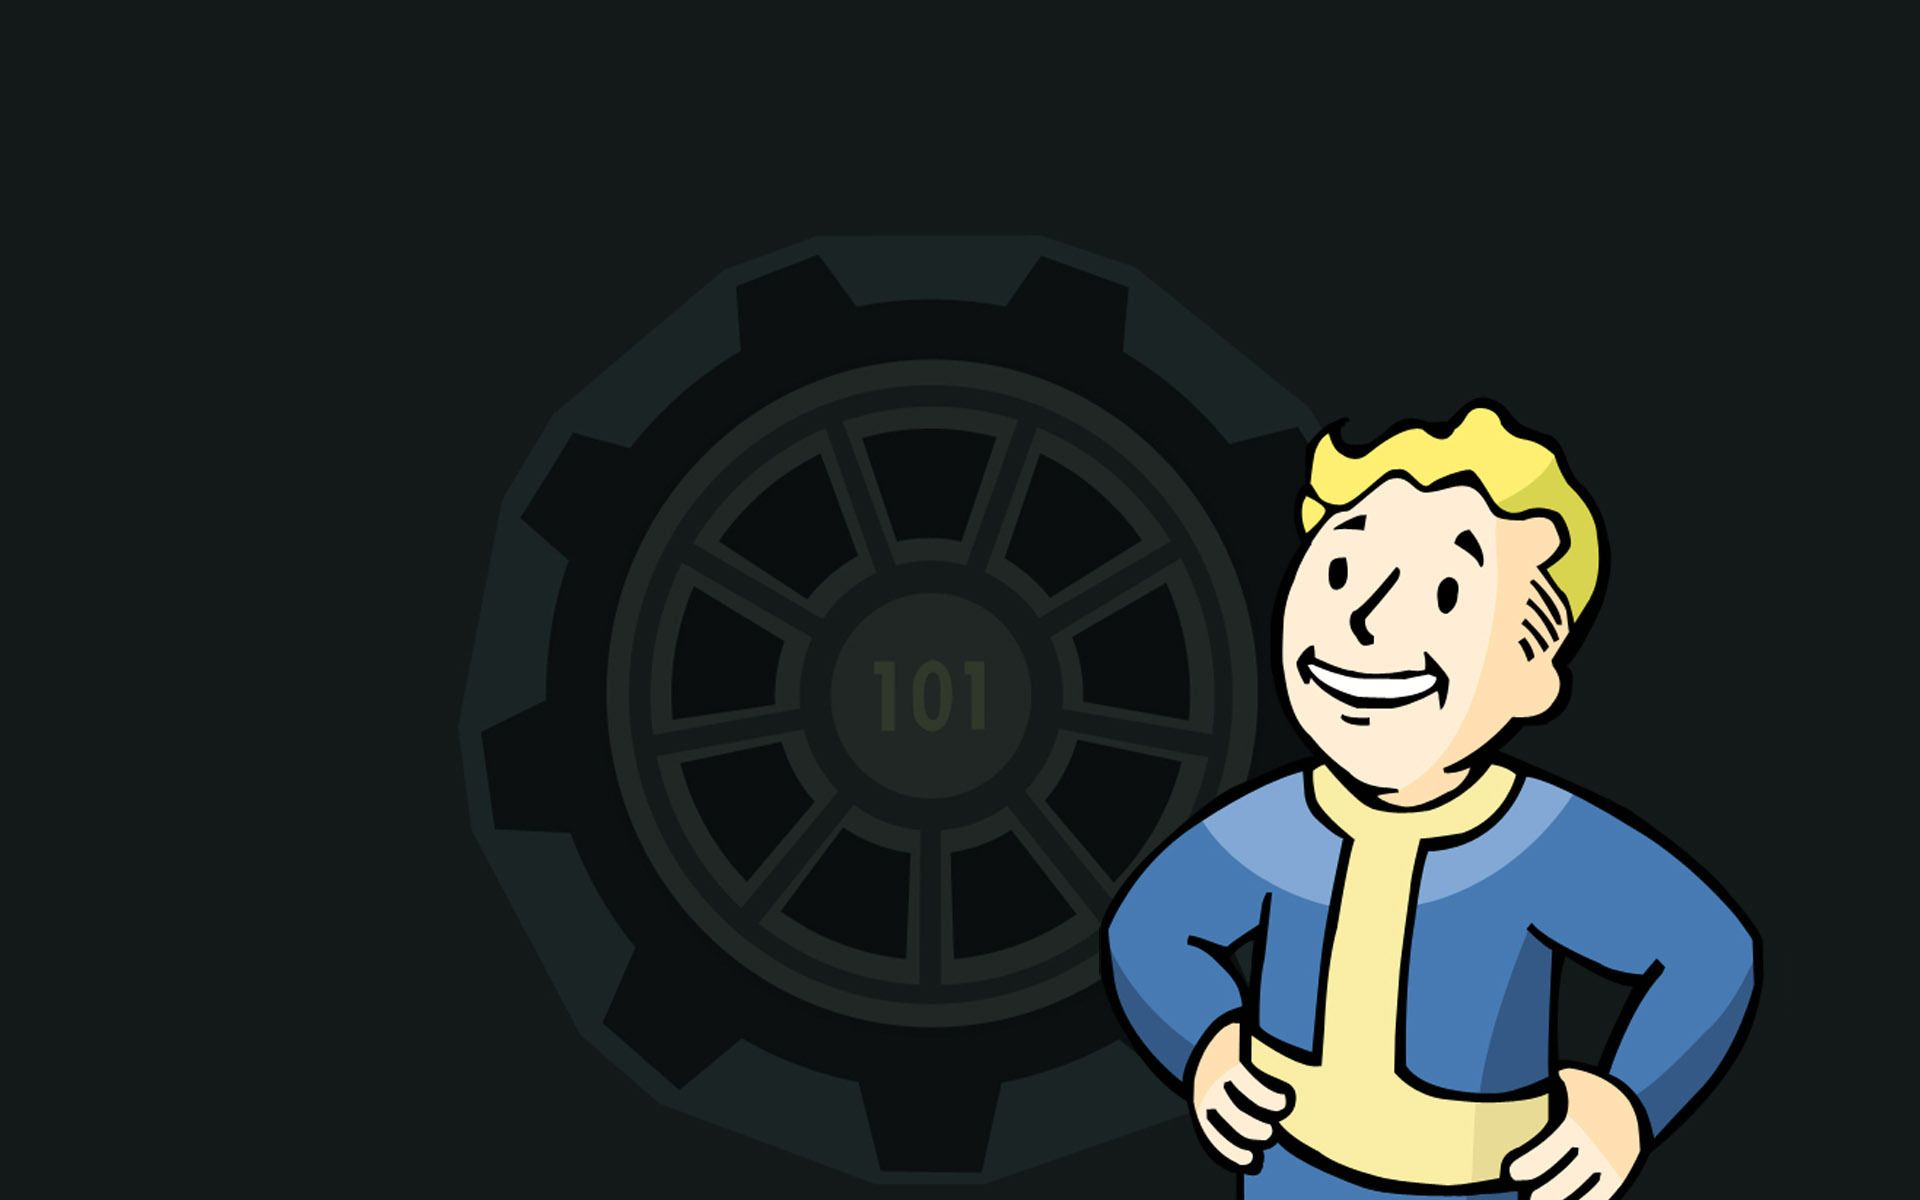 Fallout vault boy clipart hd clipart download 40 Vault Boy Backgrounds Collection for Mobile, BsnSCB clipart download